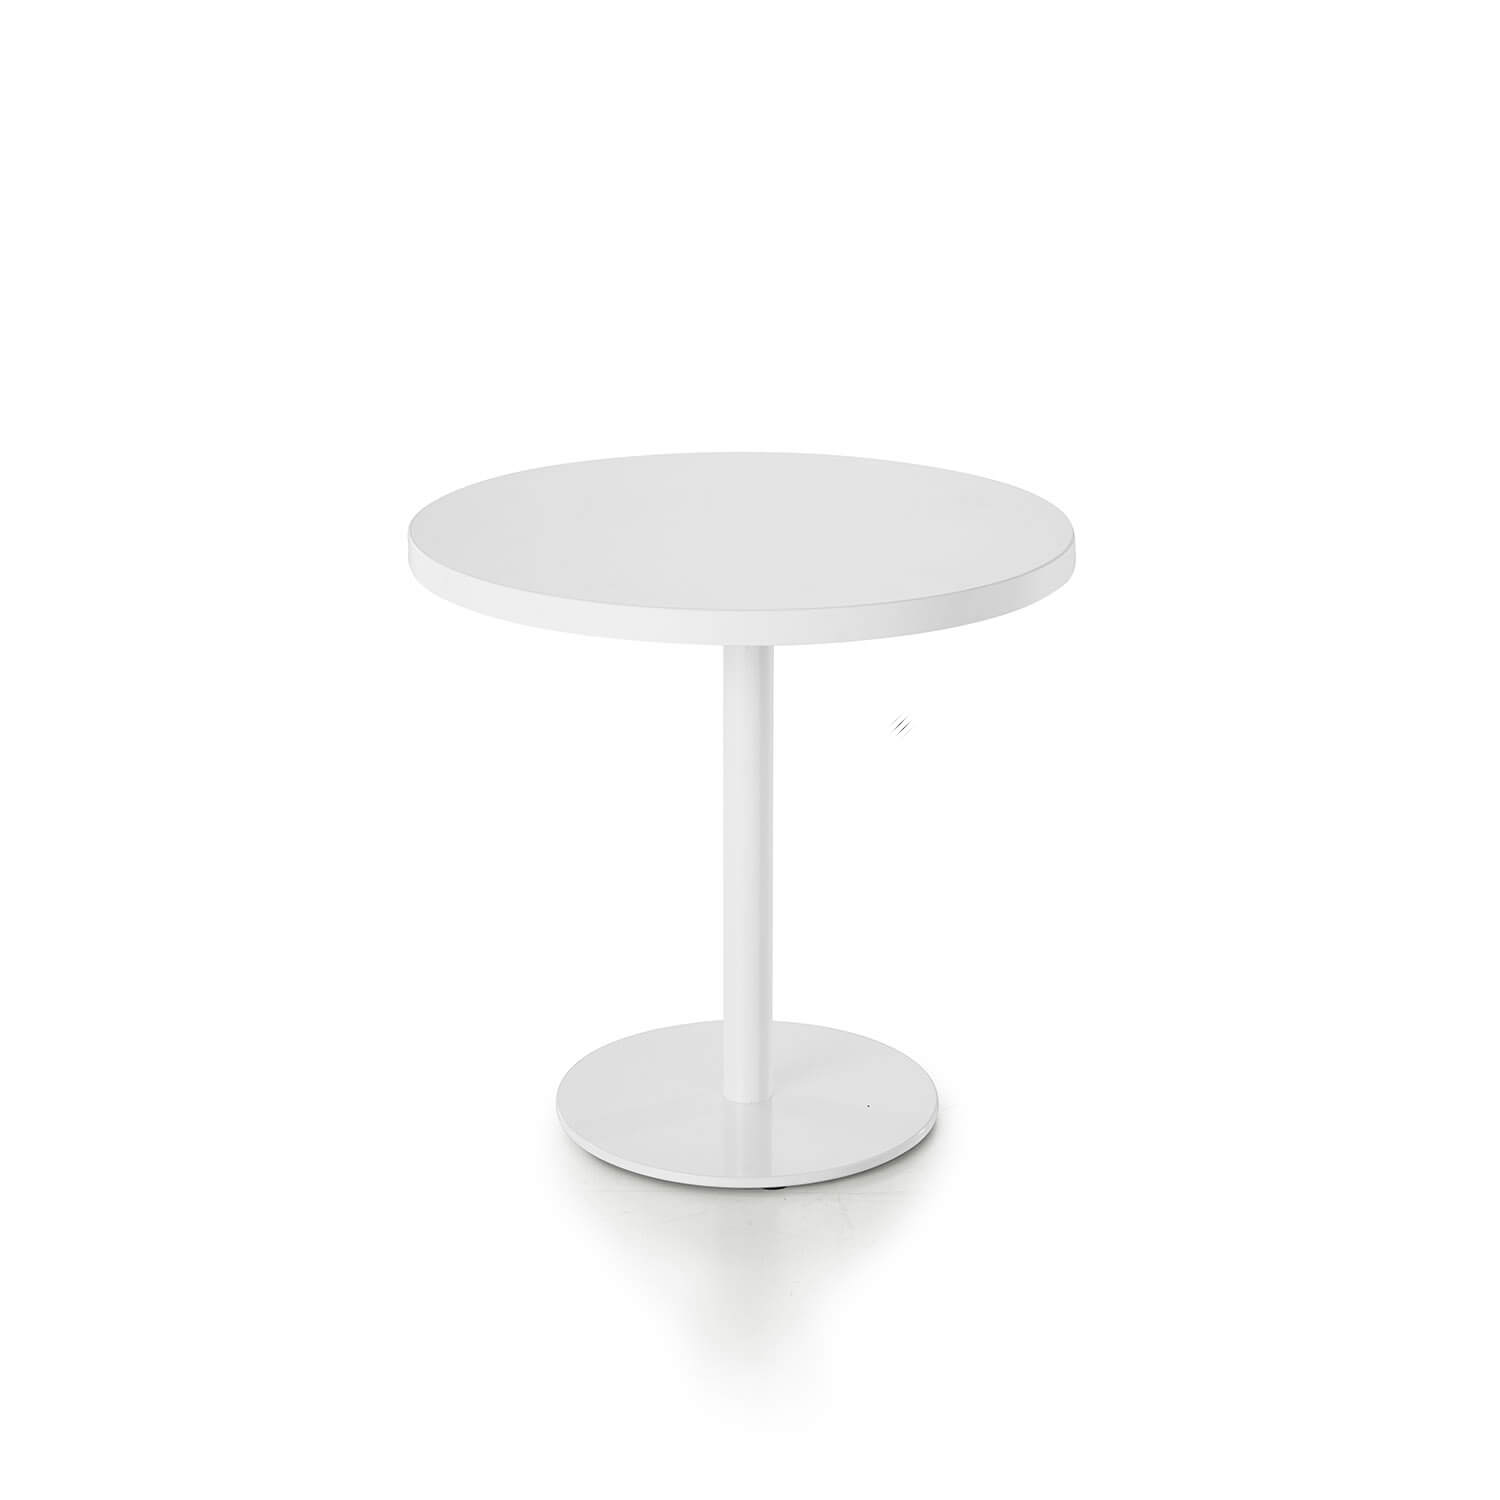 DISC TABLES6970 (6)